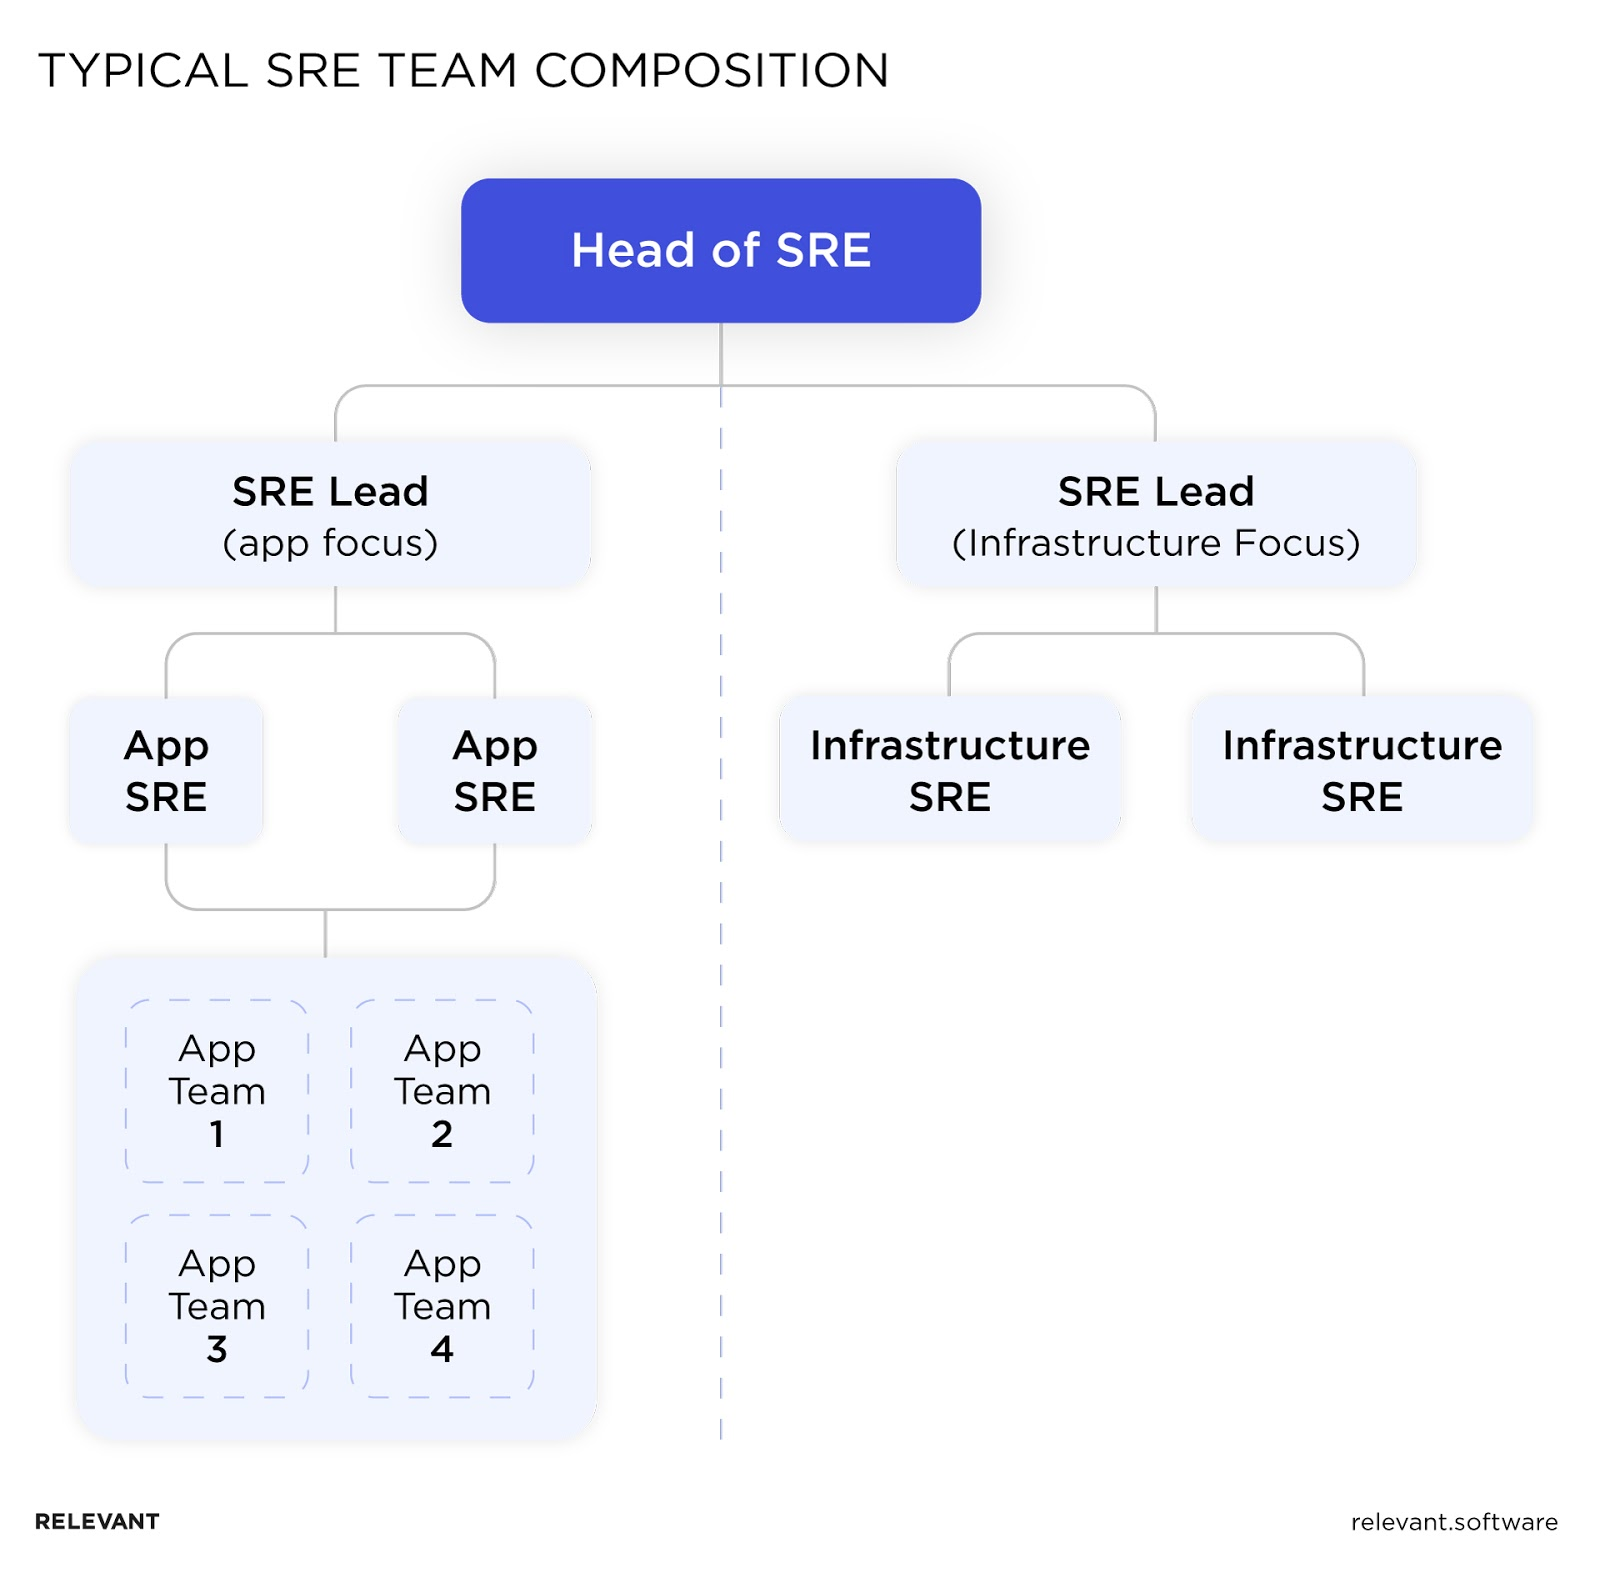 SRE team composition, structure and roles